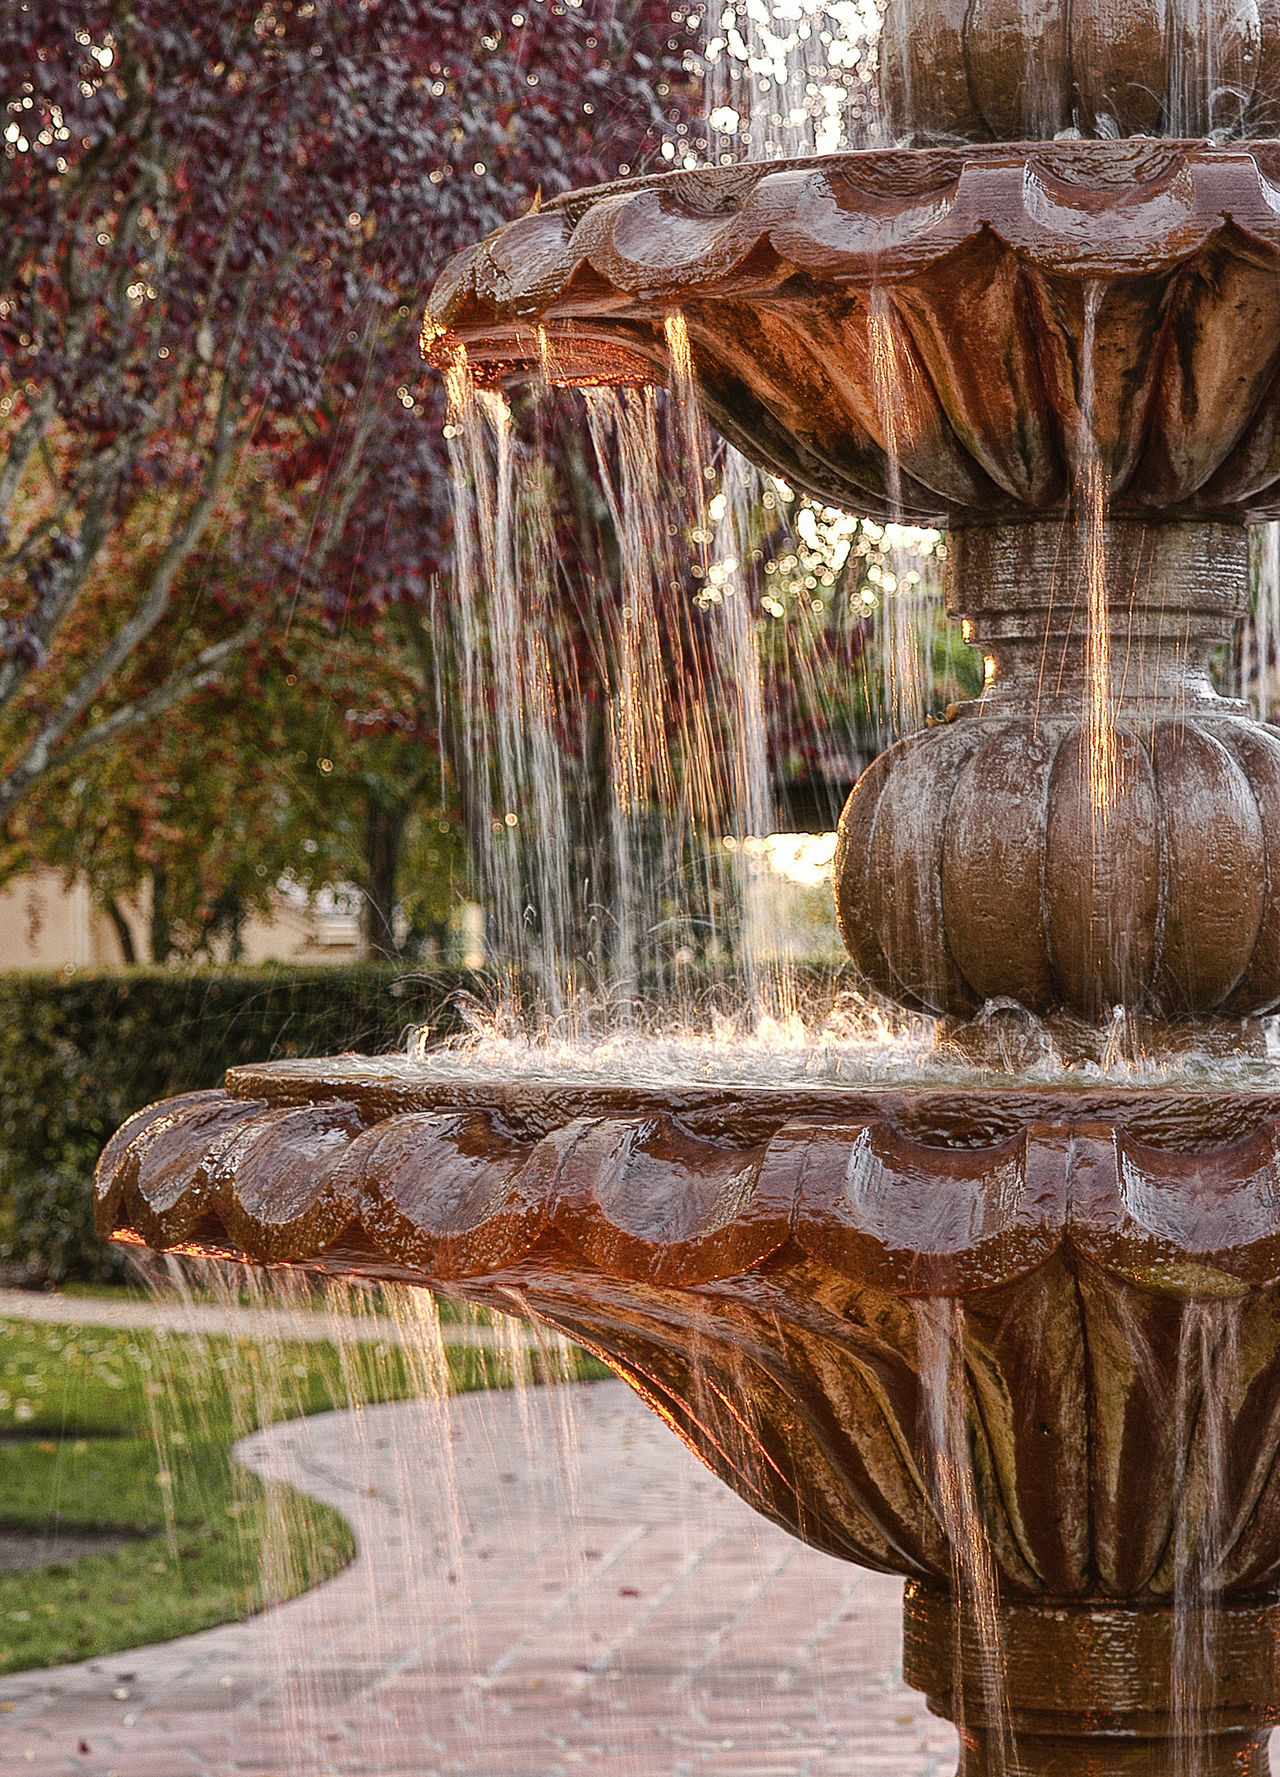 Courtyard fountain Back Yard Courtyard  Decorative Flowing Water Fountain Grass No People Ornate Design Outdoors Pathway Patio Sculpted Splashing Water Trees Vertical Composition Water